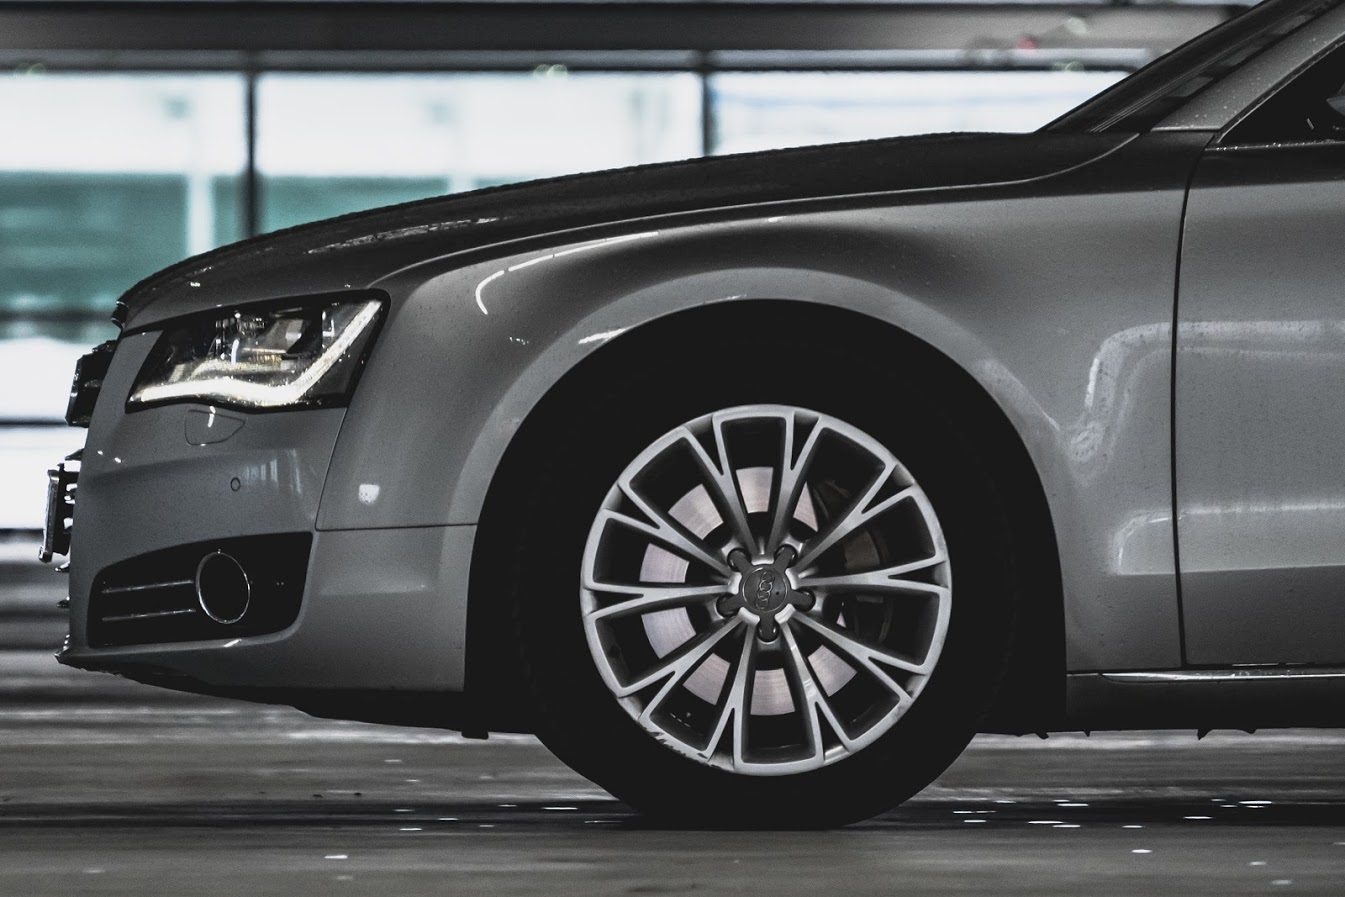 Audi A8 for Private Hire, Chauffeur, Event, Wedding, Taxi Services. Luxury Sedan.